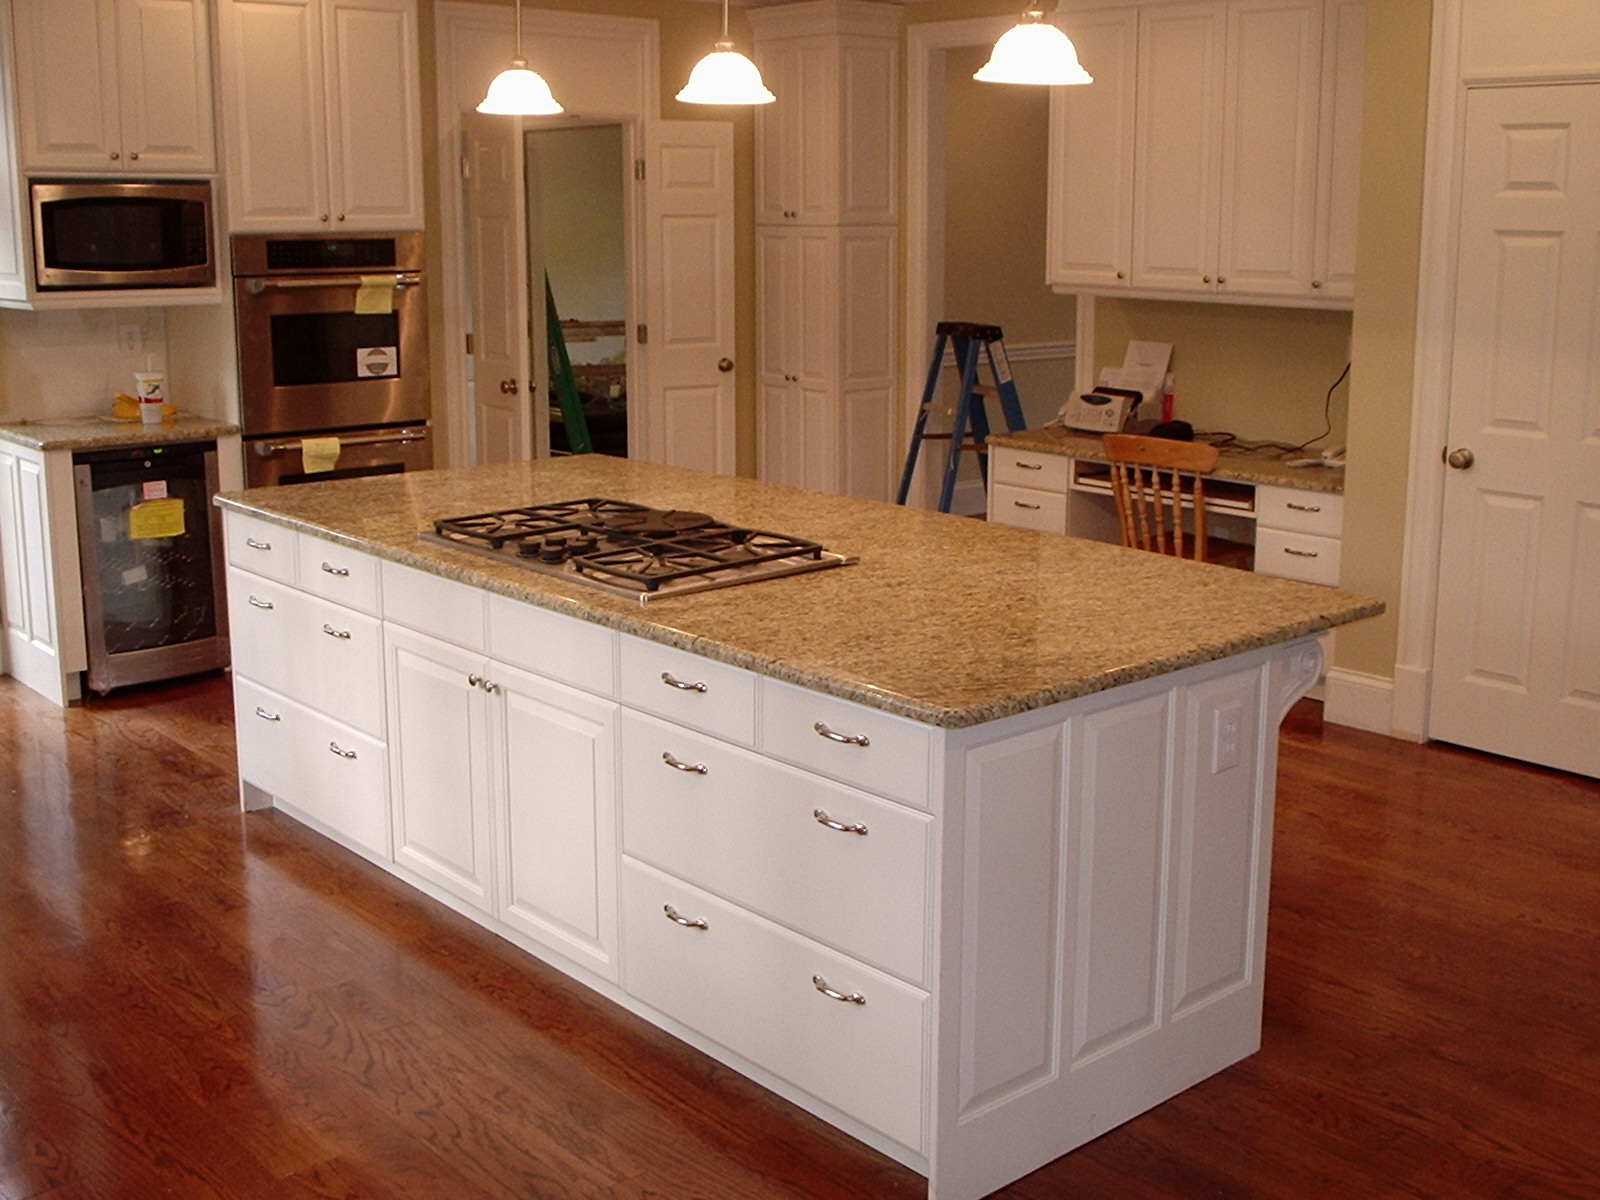 Kitchen cabinet plans dream house experience for Build kitchen island with cabinets